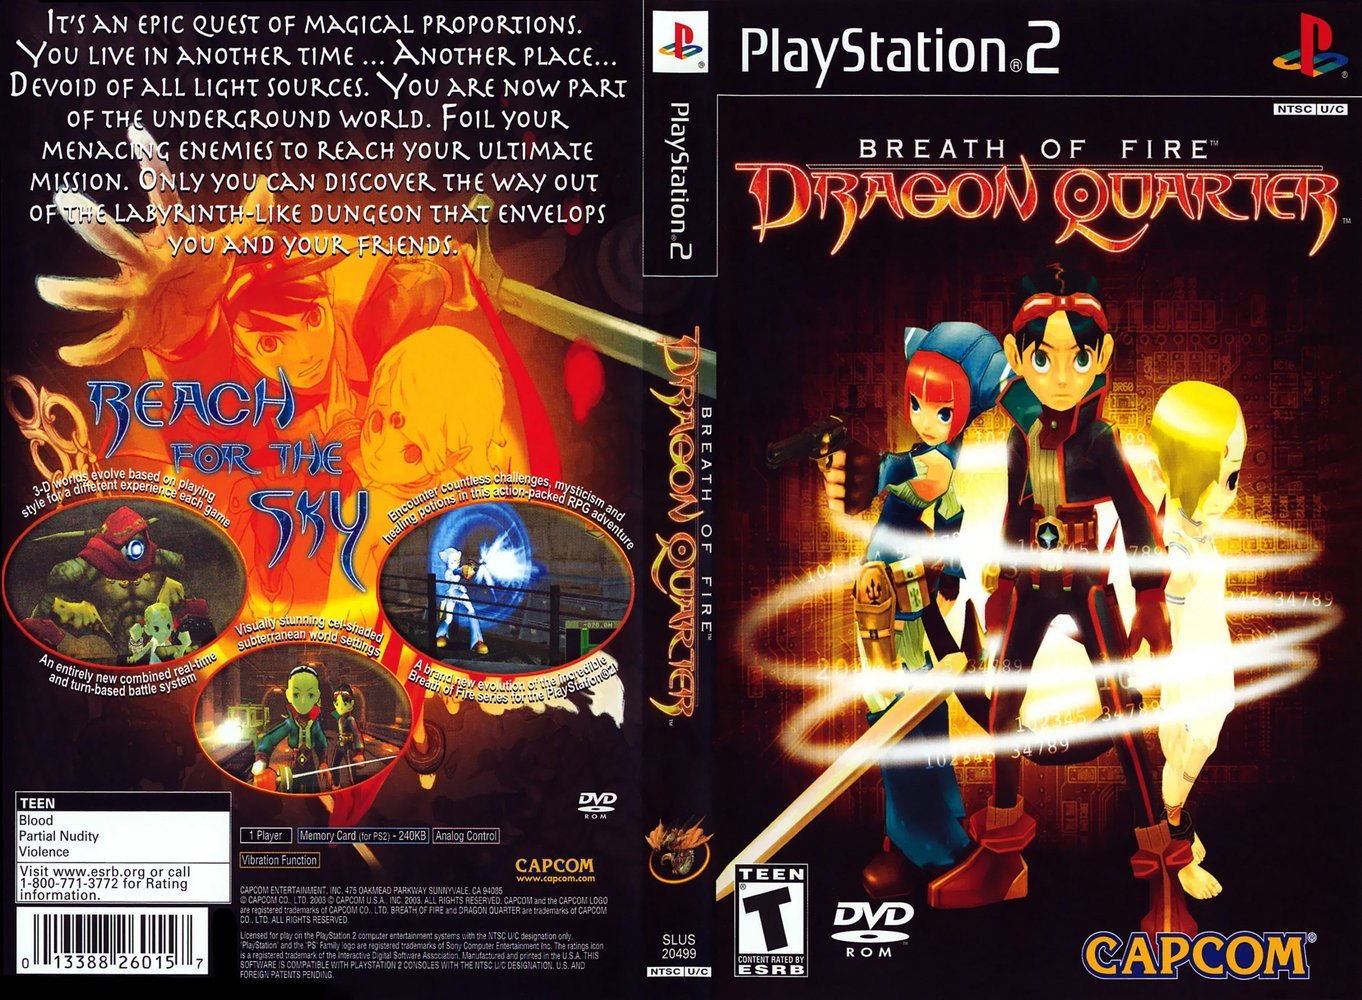 breath of fire 5 dragon quarter download firefox